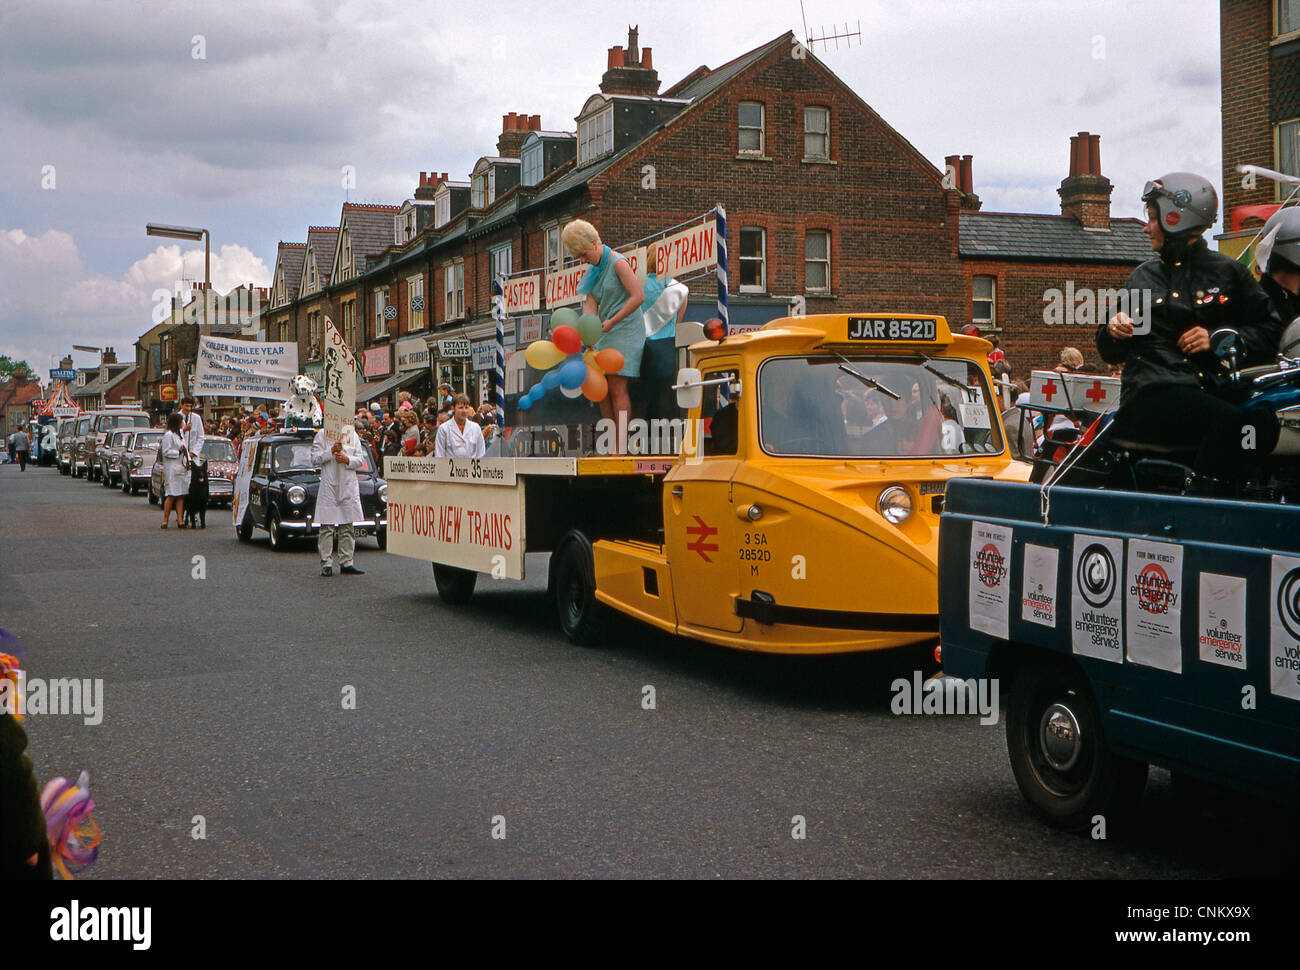 Truck advertising British Railways London to Manchester train service in Watford Whitsun Carnival parade, St Albans - Stock Image